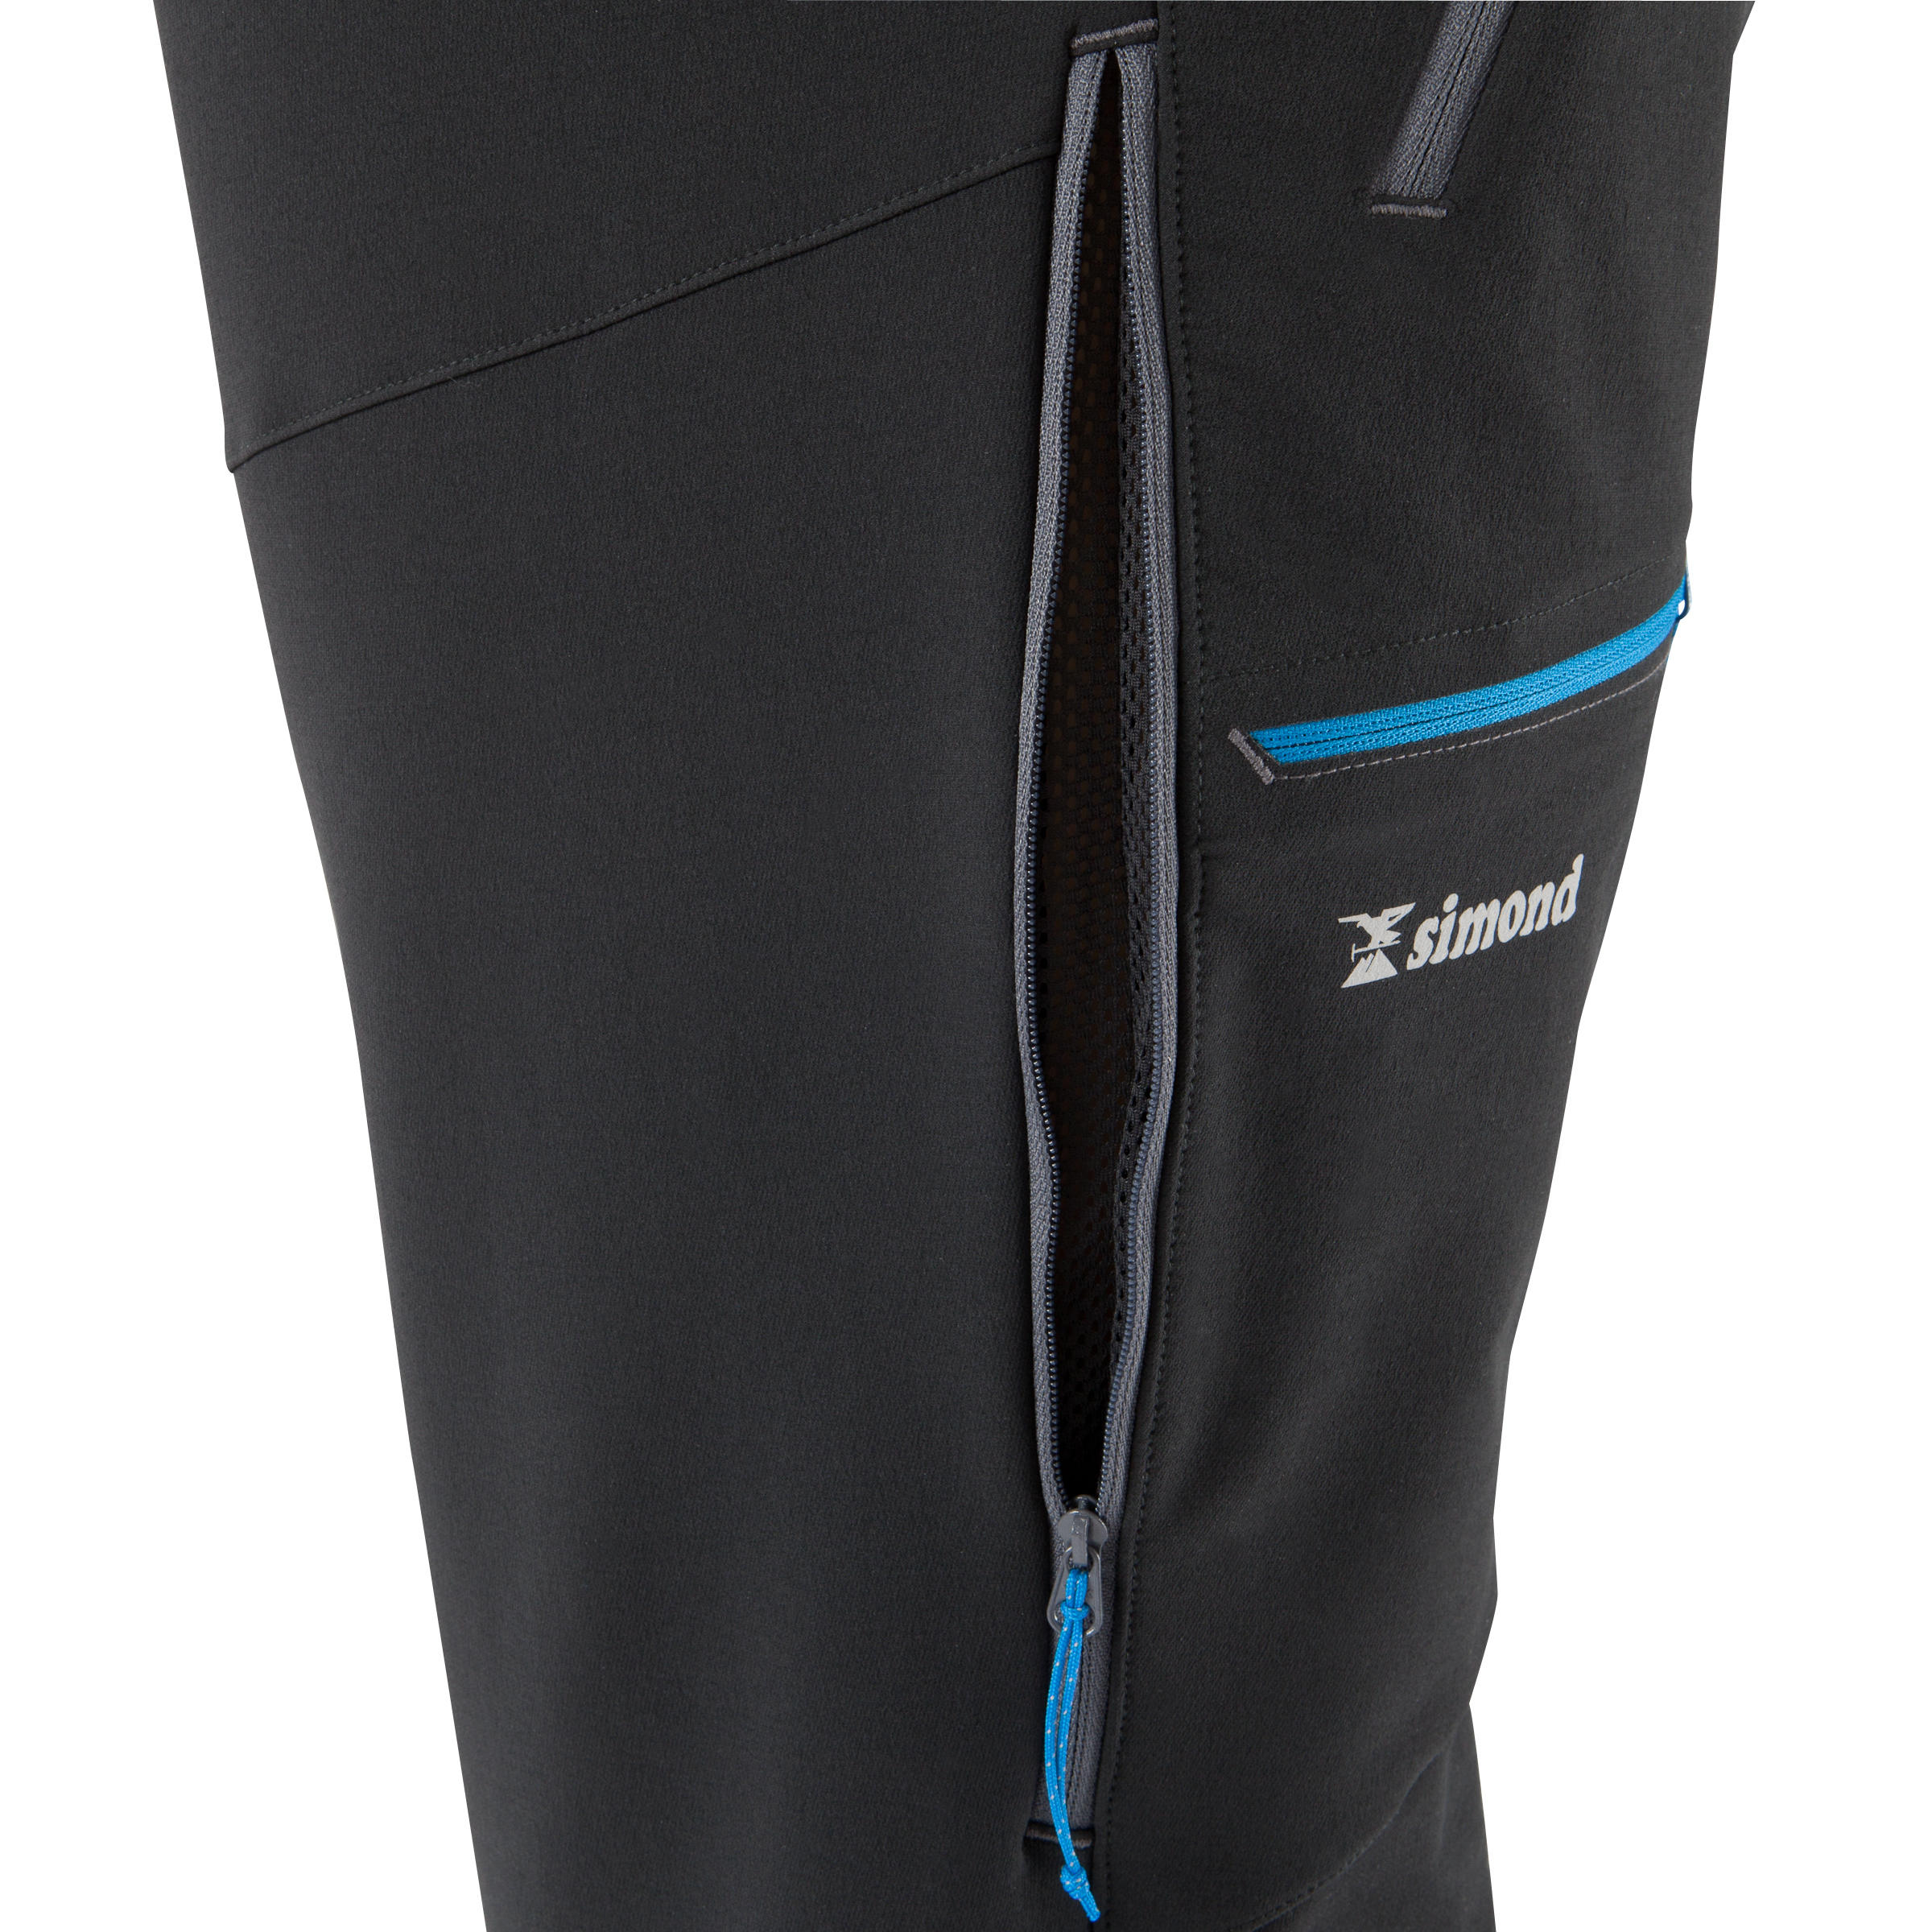 Men's Mountaineering Pants with Gaiters- Simond